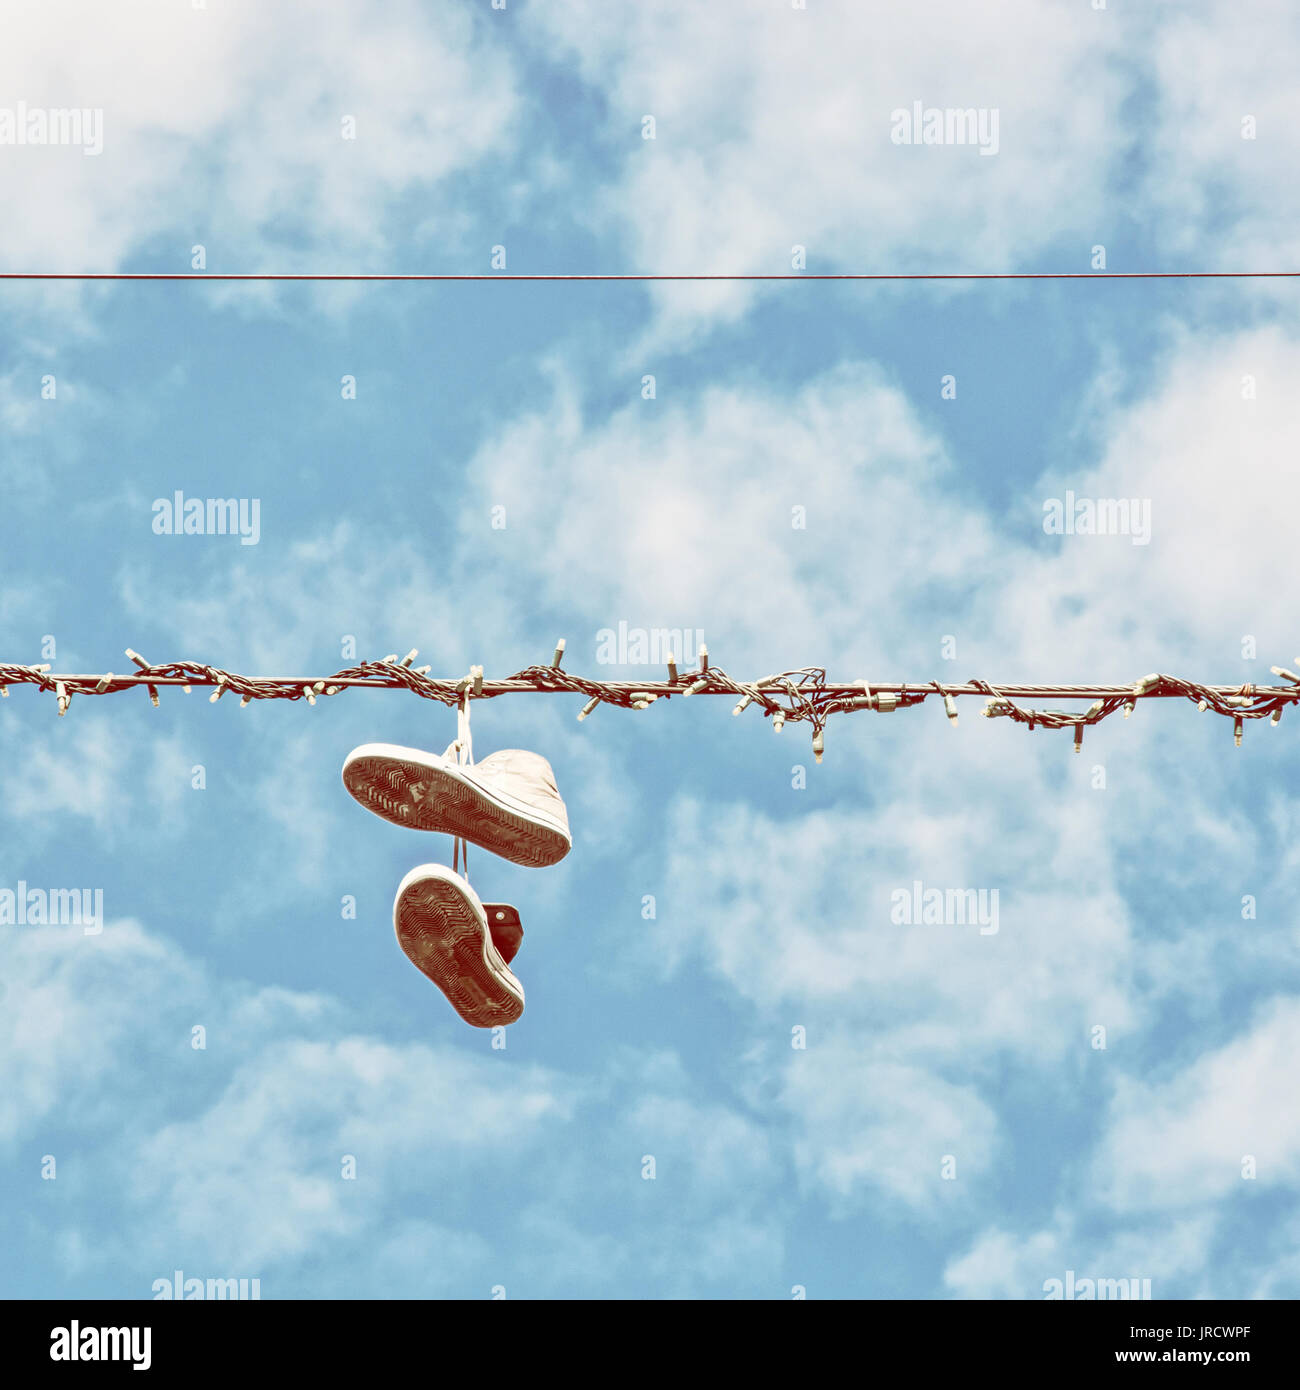 sneakers hanging on the power line blue sky bad joke retro photo